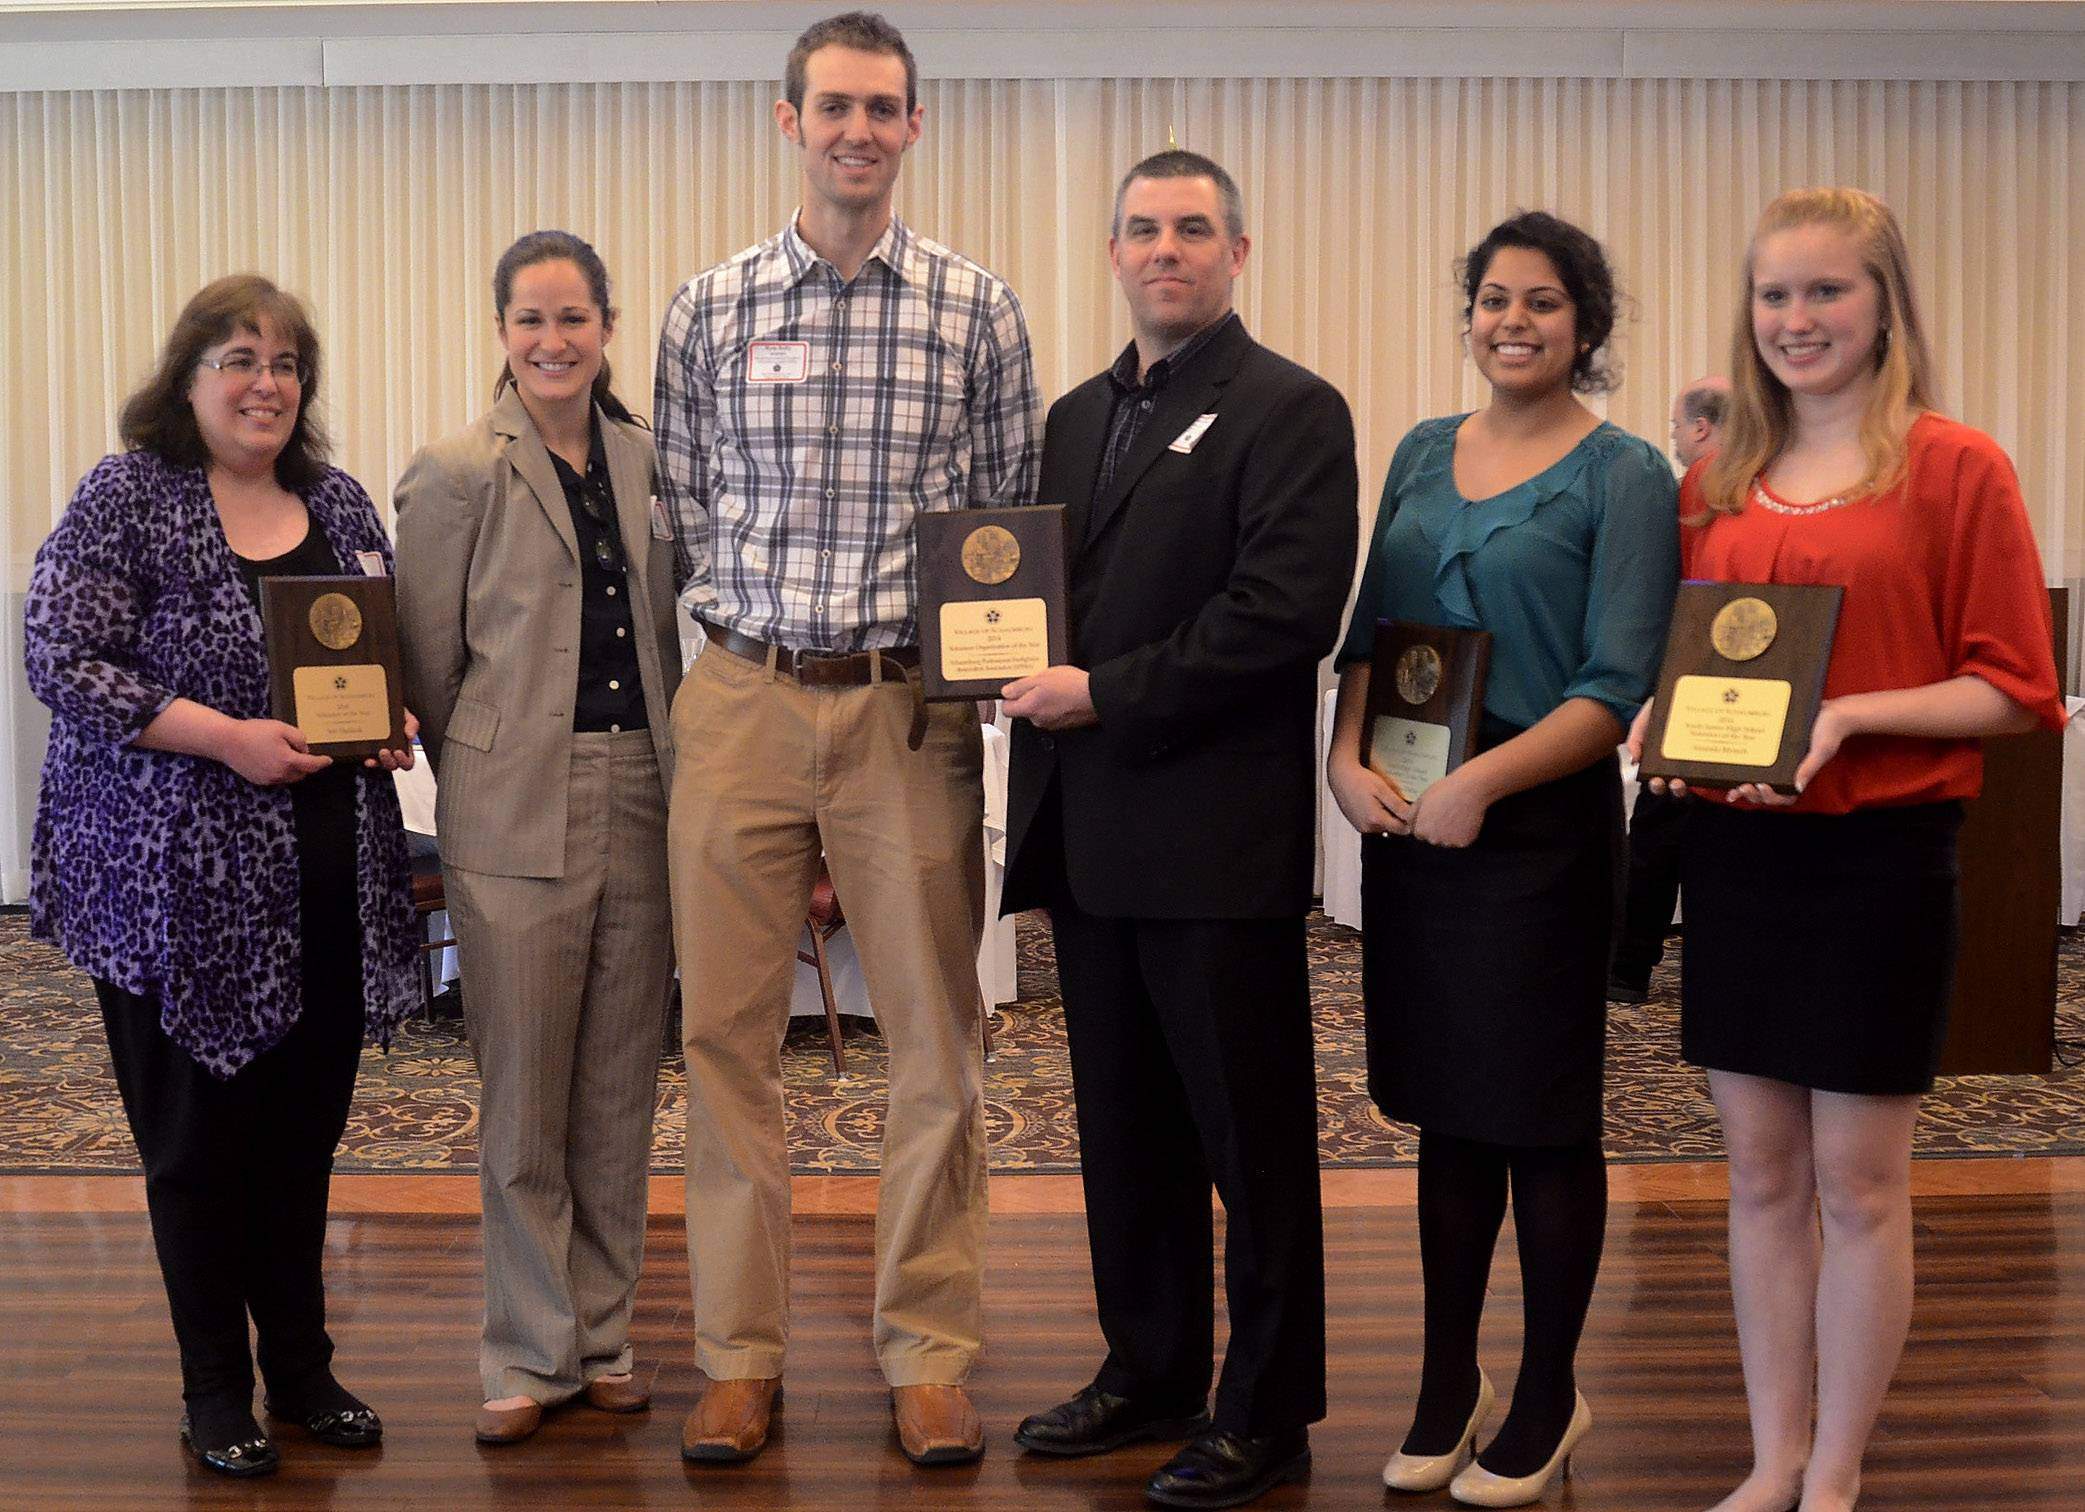 The 2014 Schaumburg Volunteer of the Year recipients from left, Adult Individual recipient Teri Dudasik; Organization recipients from the Schaumburg Professional Firefighters Benevolent Association, Jenna Werdell, Ryan Kelly and Jim Sheehan; and Youth recipients Sania Zaffar and Amanda Mytych.